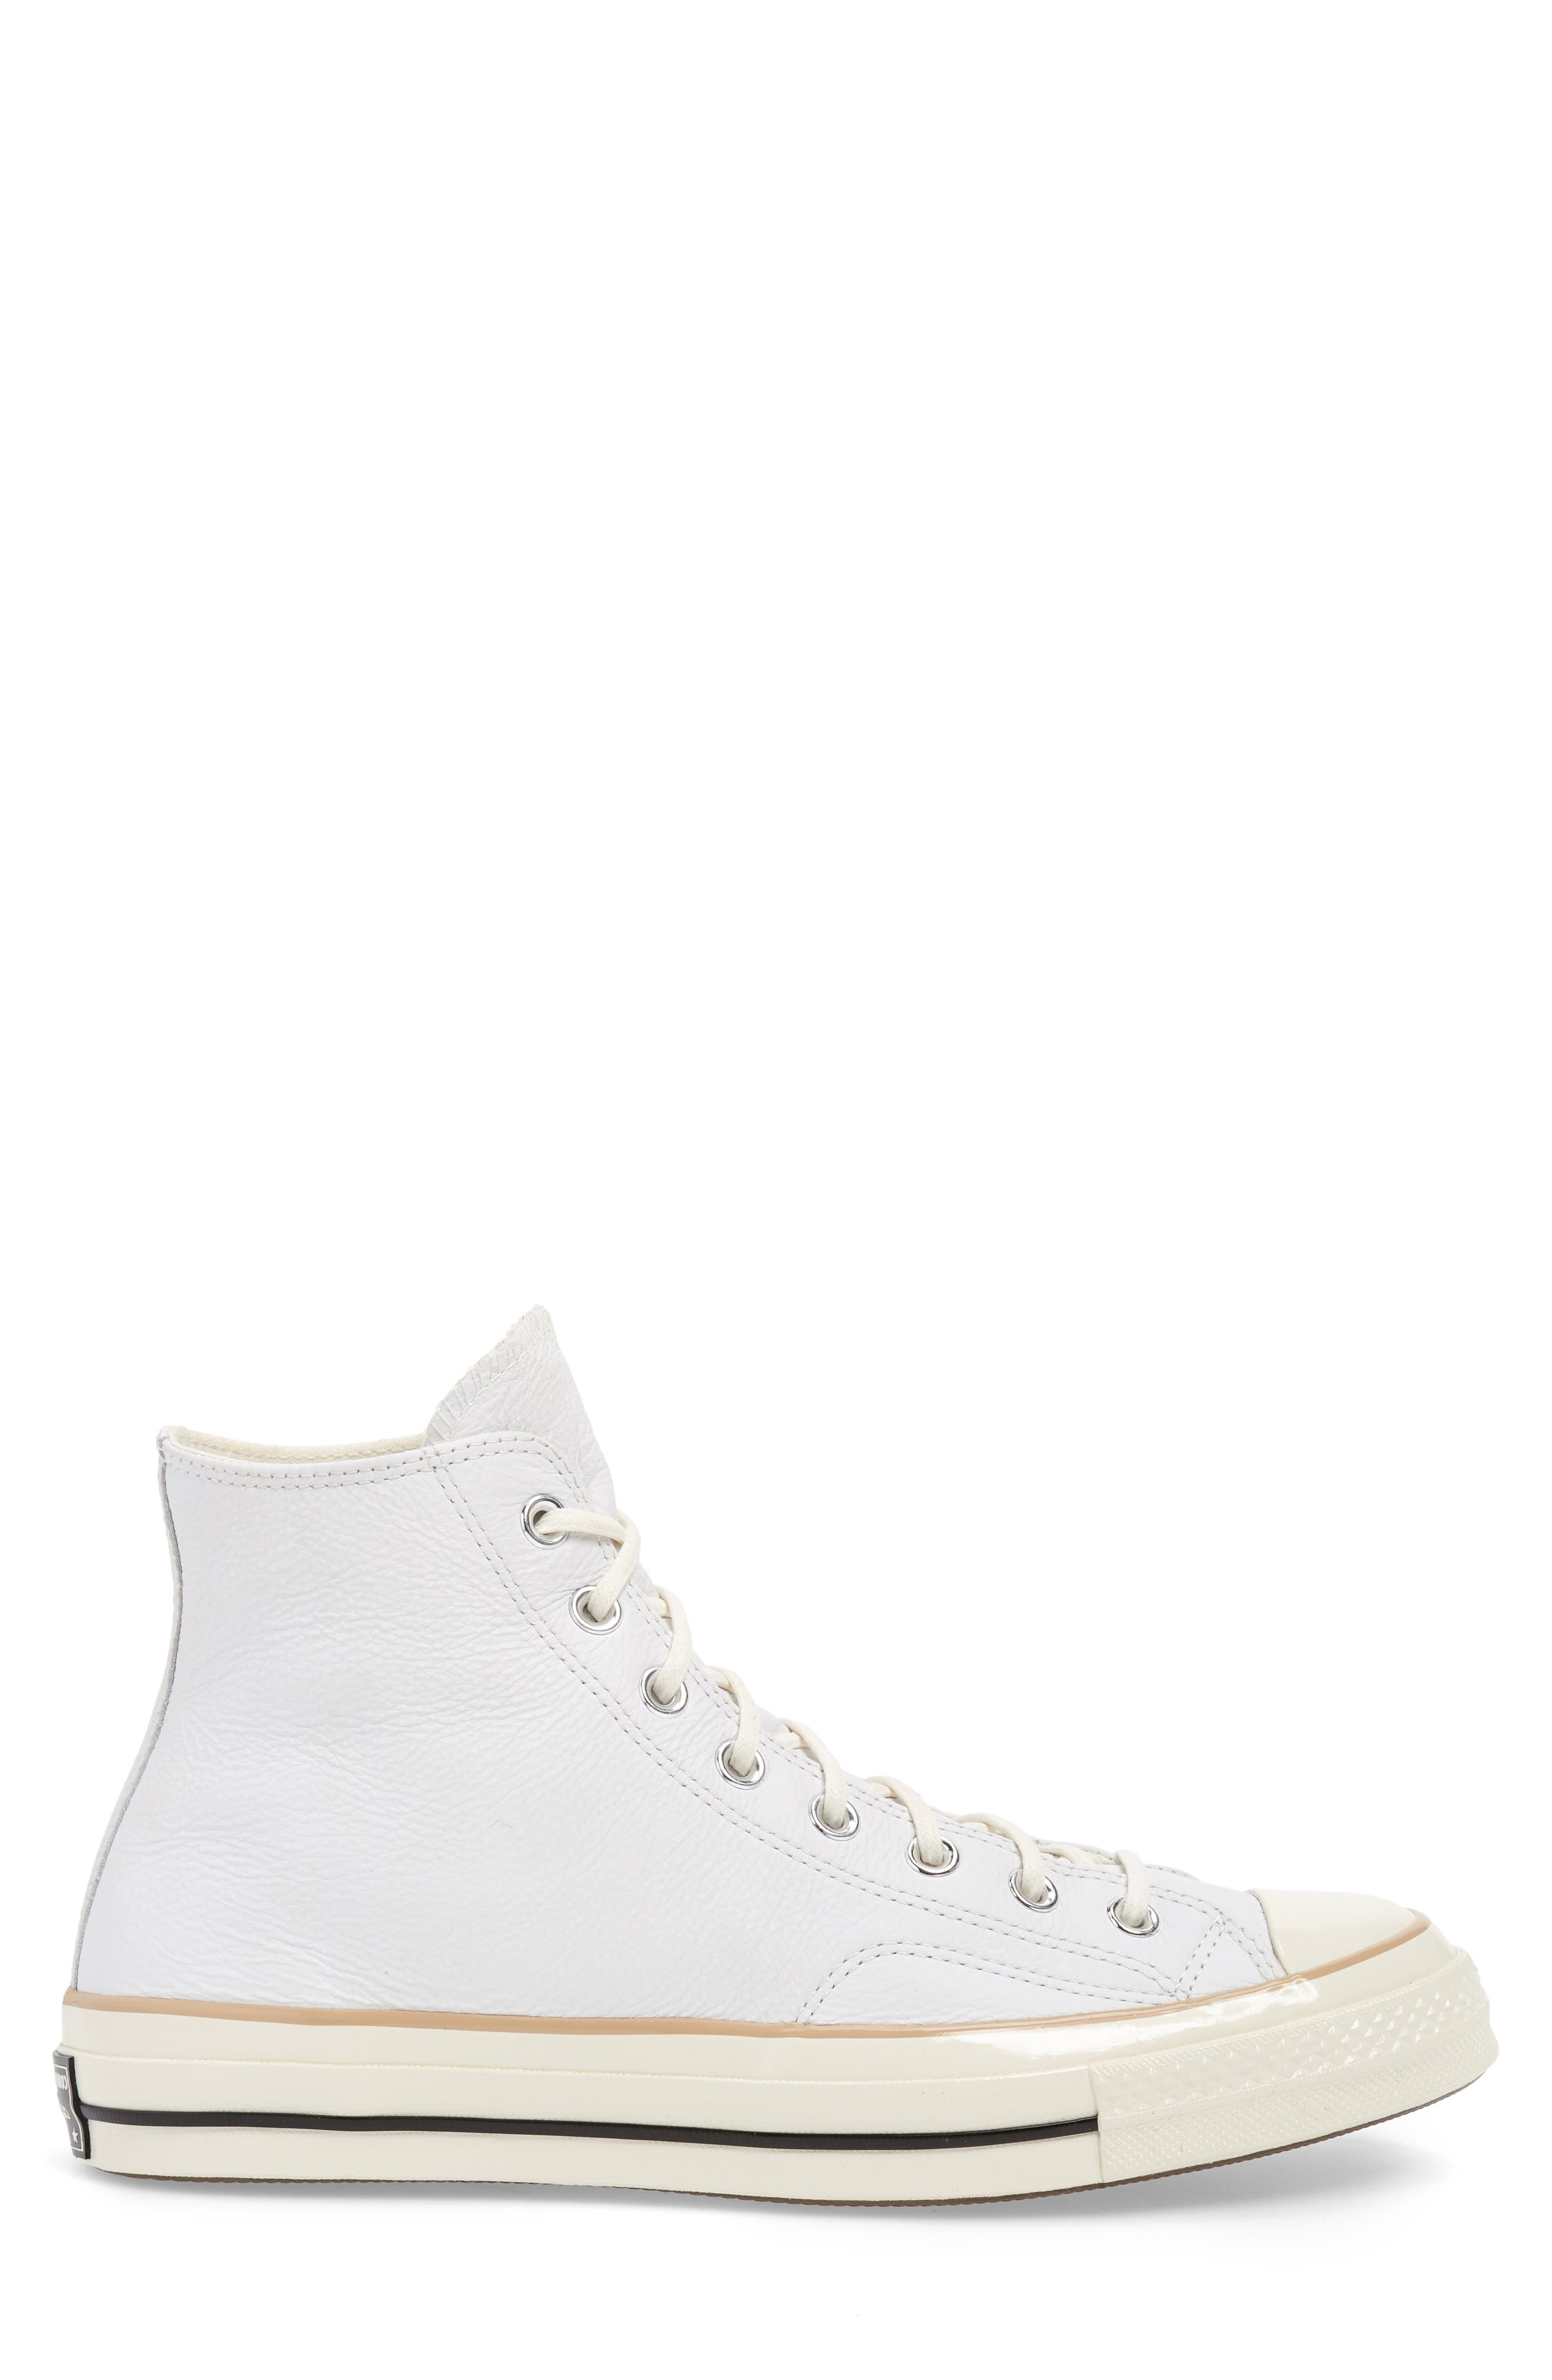 Chuck 70 Boot Leather High Top Sneaker,                             Alternate thumbnail 3, color,                             WHITE/ LIGHT FAWN/ EGRET